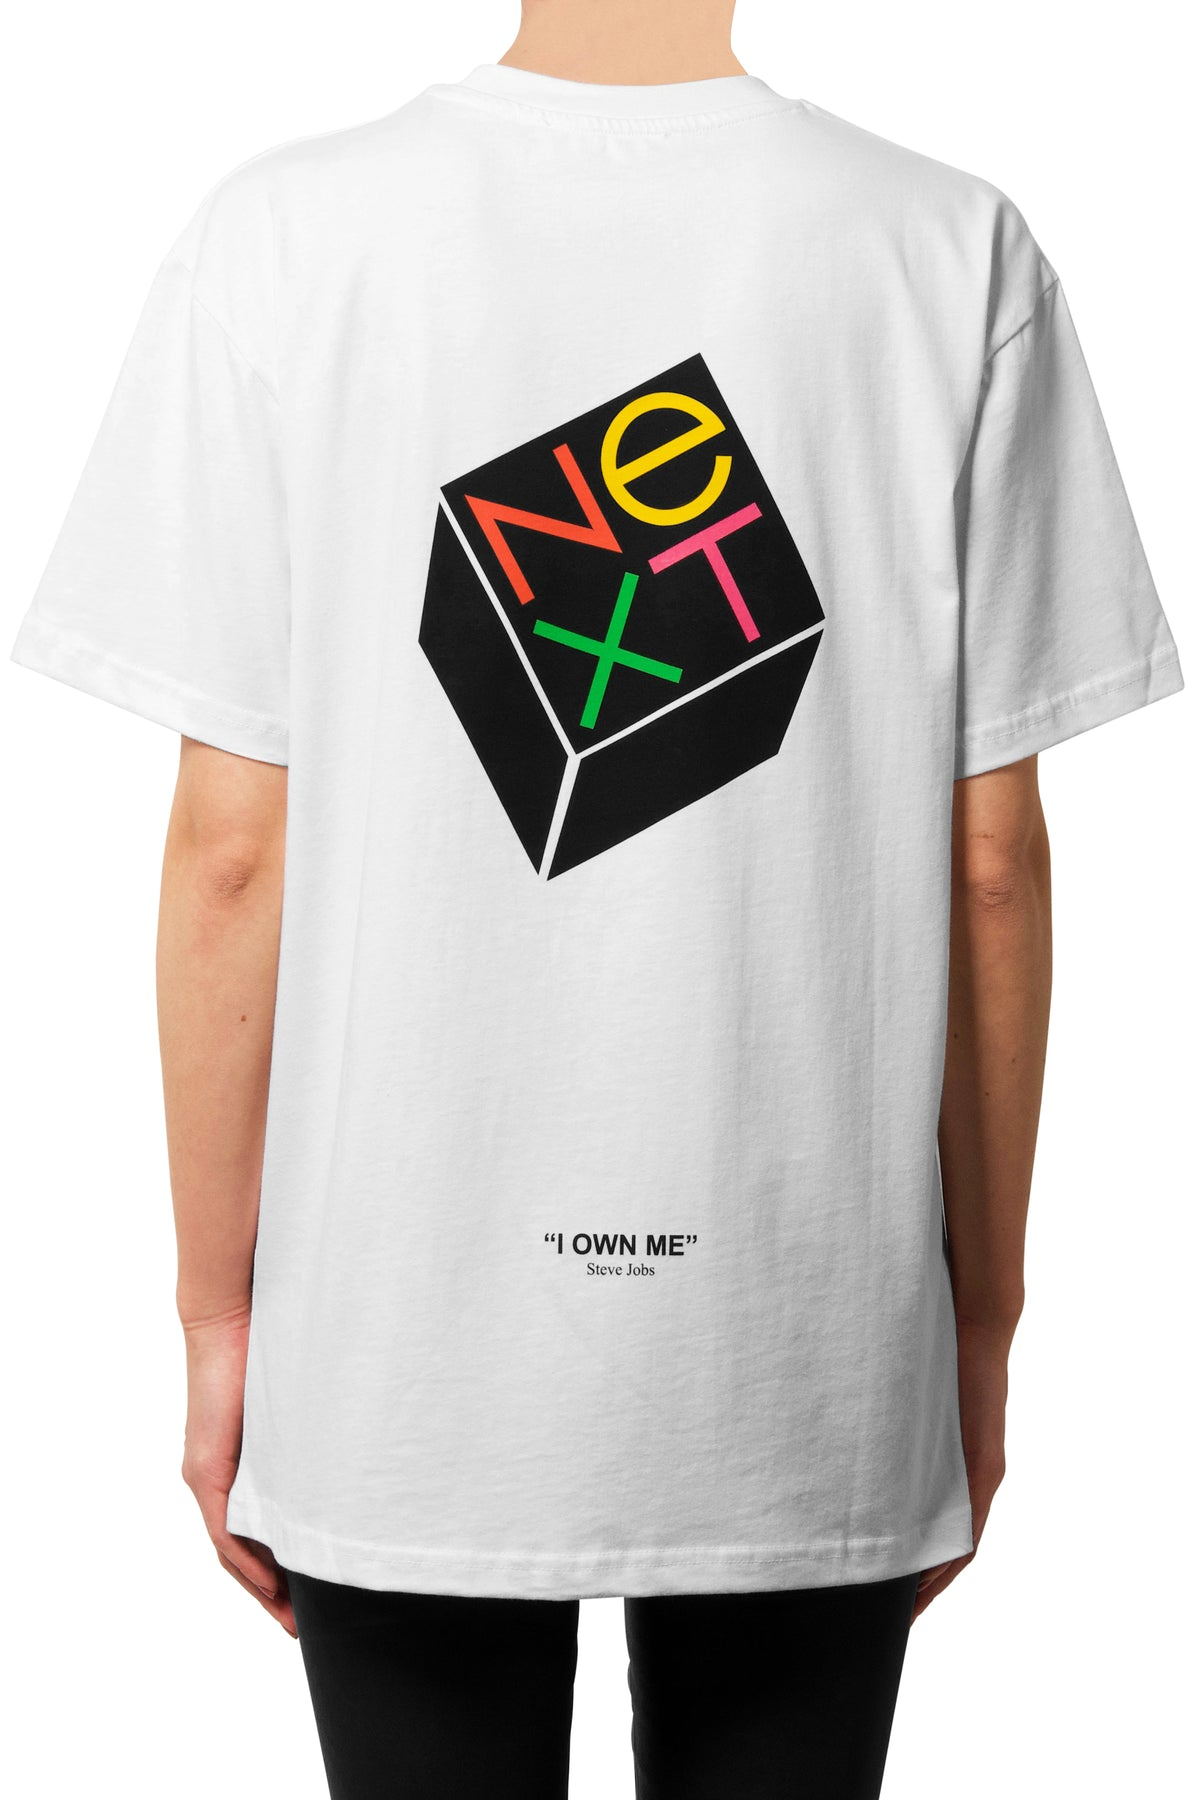 "032c ""1997"" Bootleg 2/2: NexT Shirt - 032c"